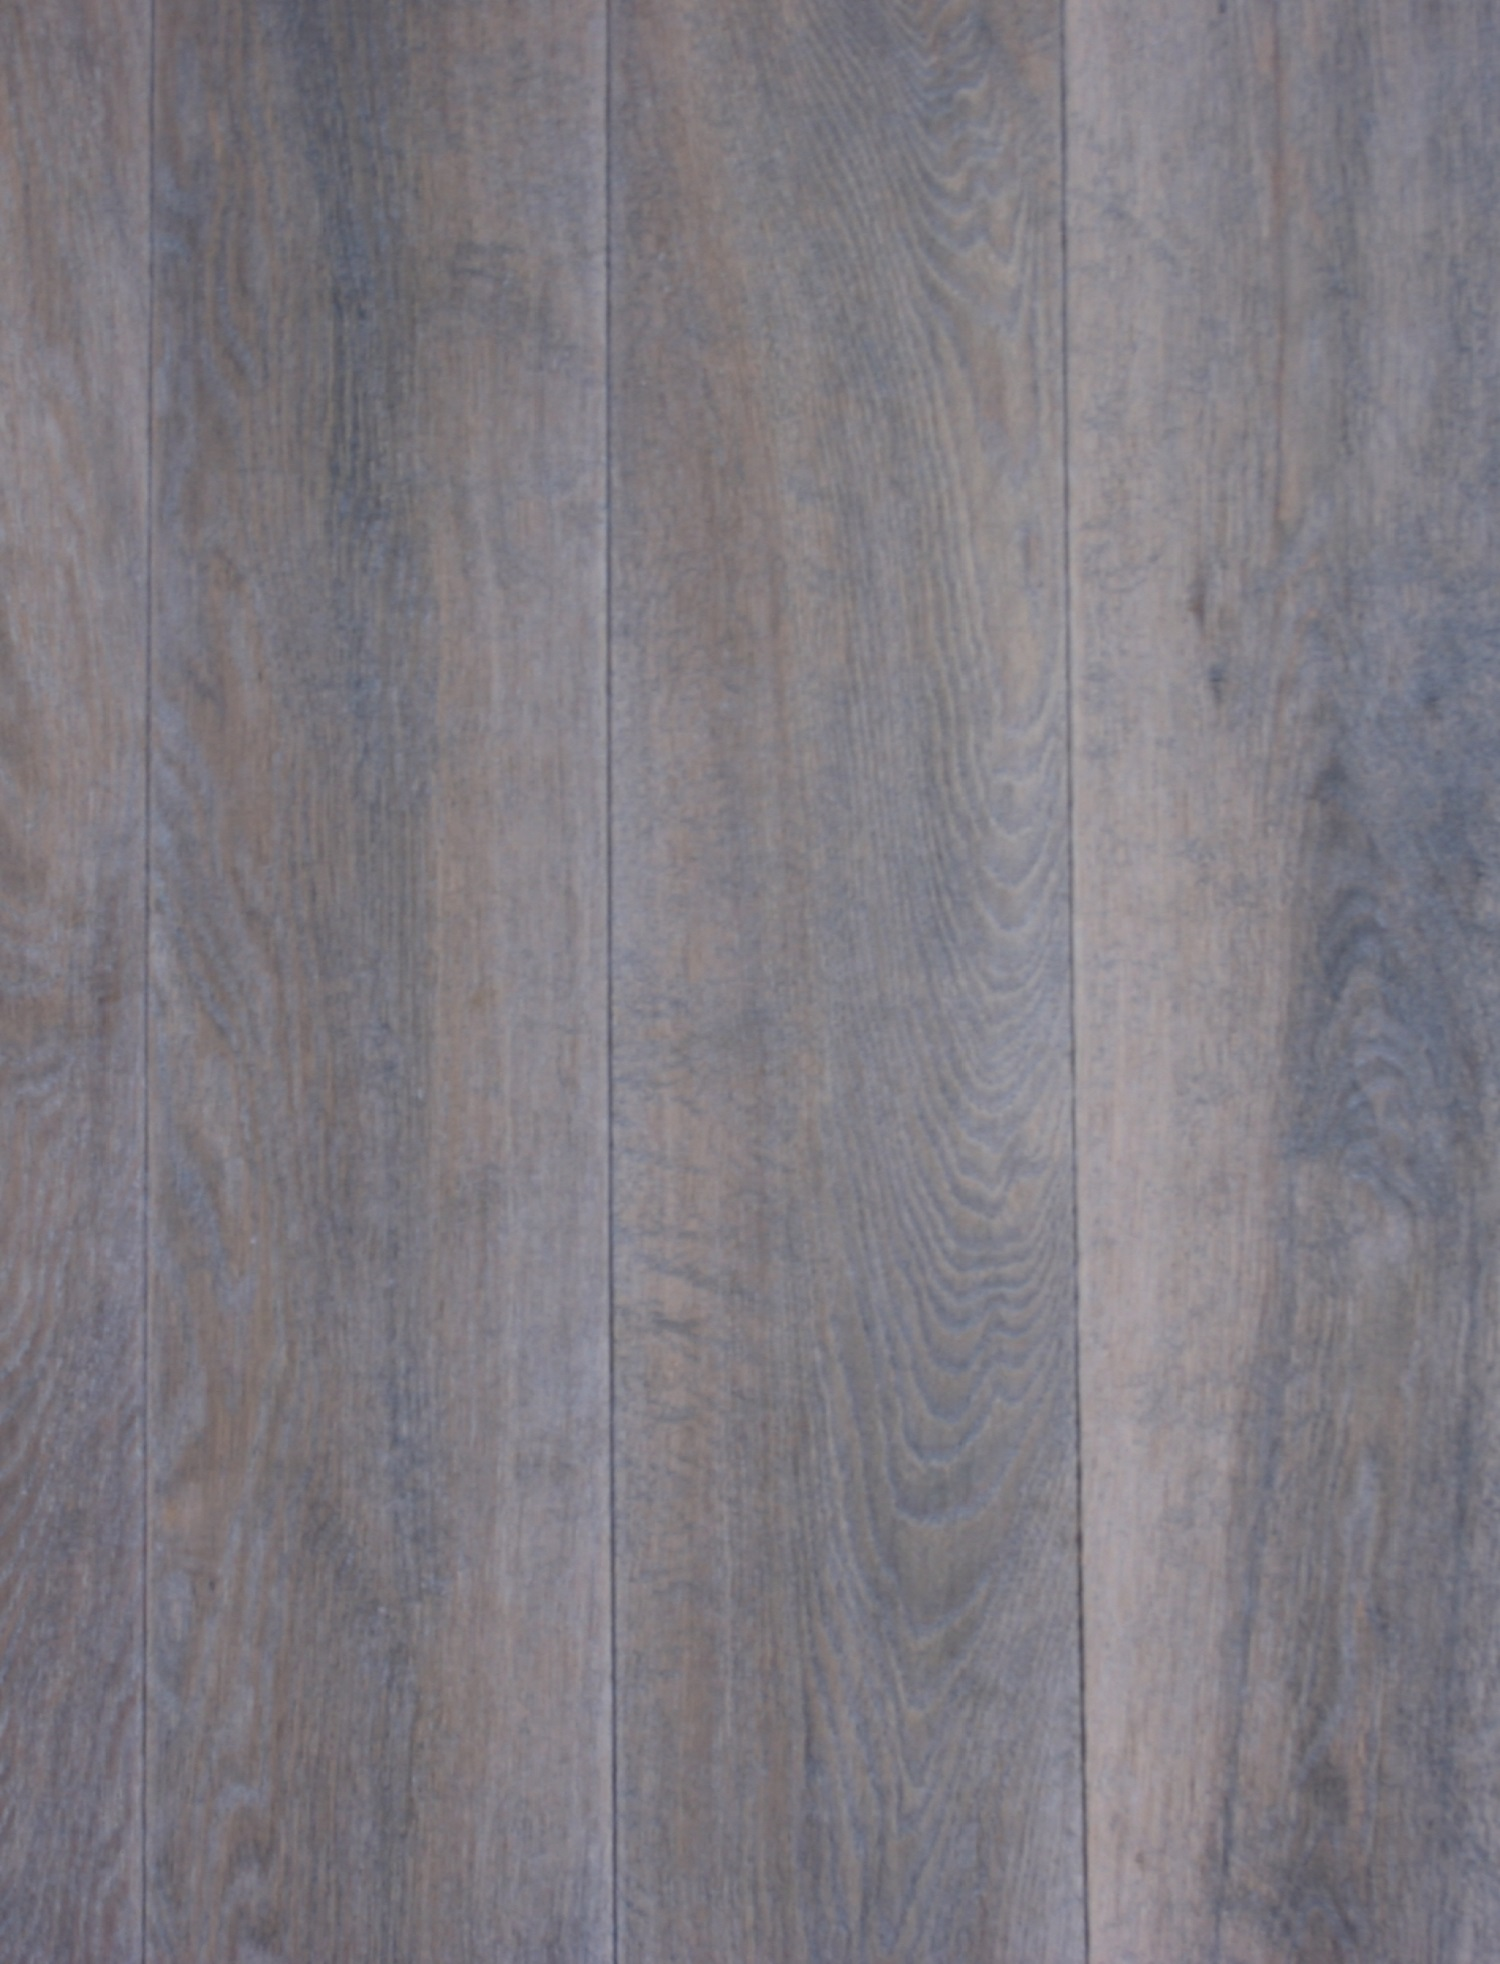 Irongray engineered oak real wooden floor london stock for Real oak hardwood flooring